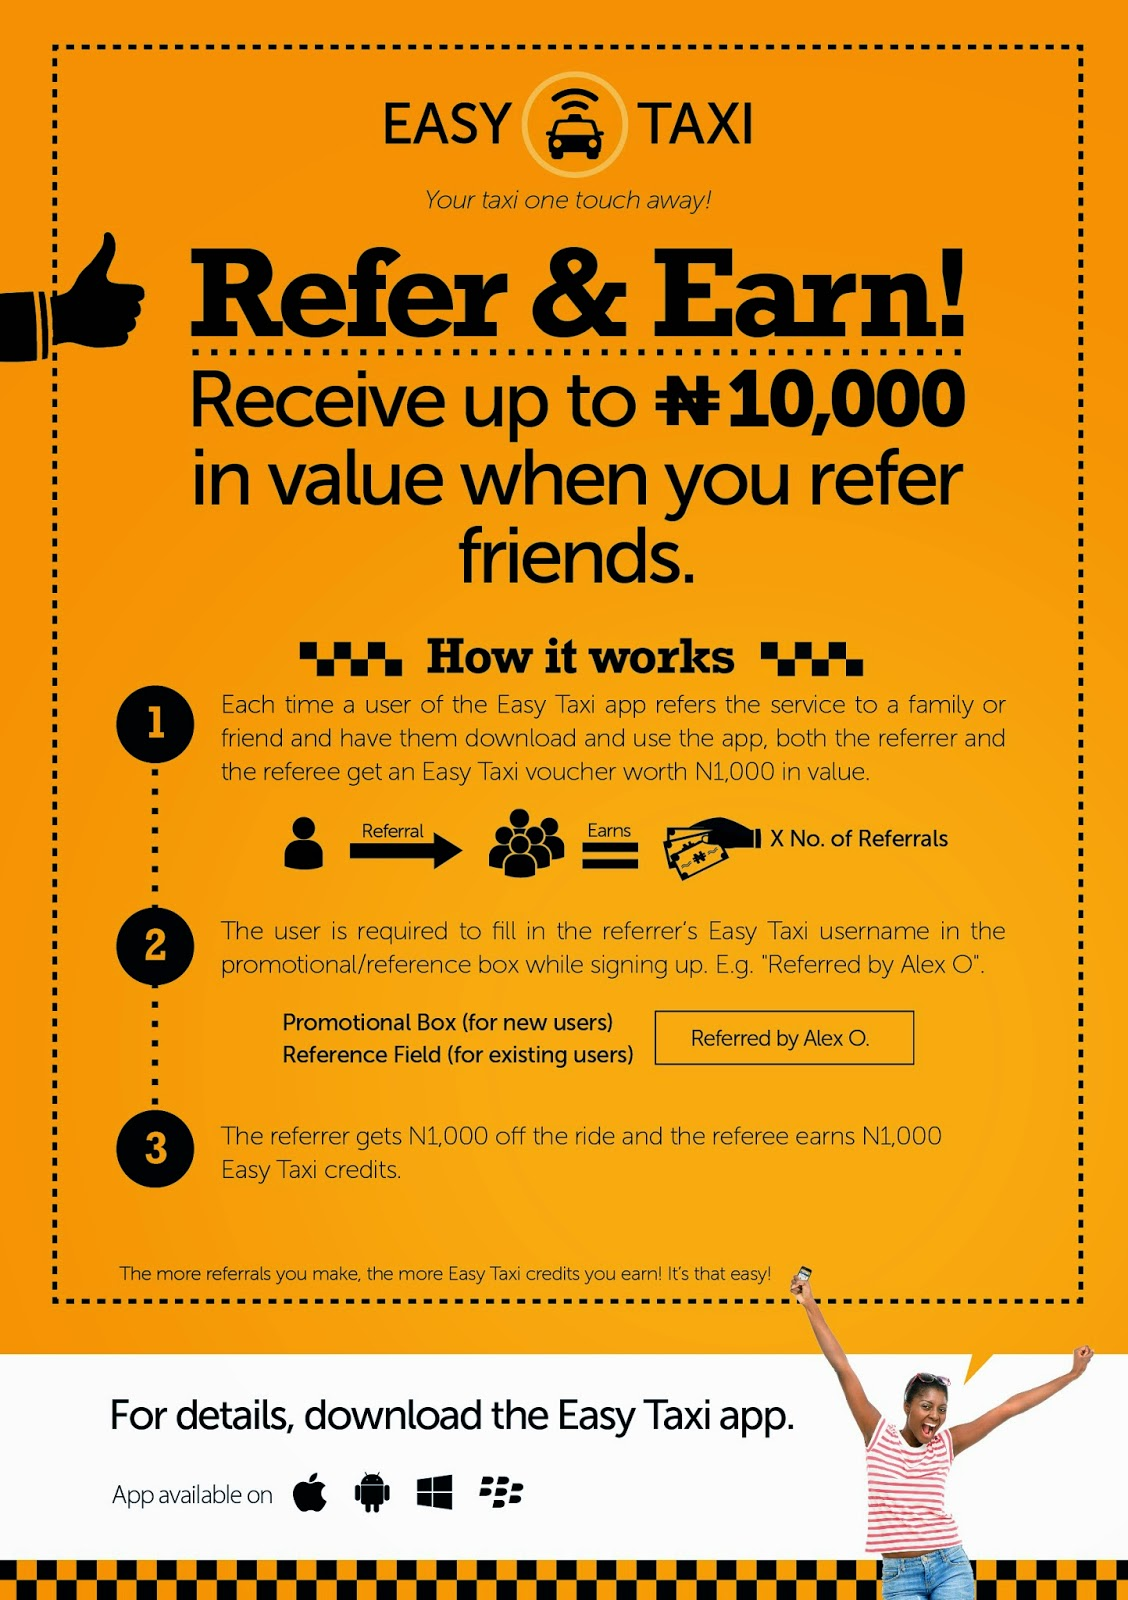 The Easy Taxi Referral Program